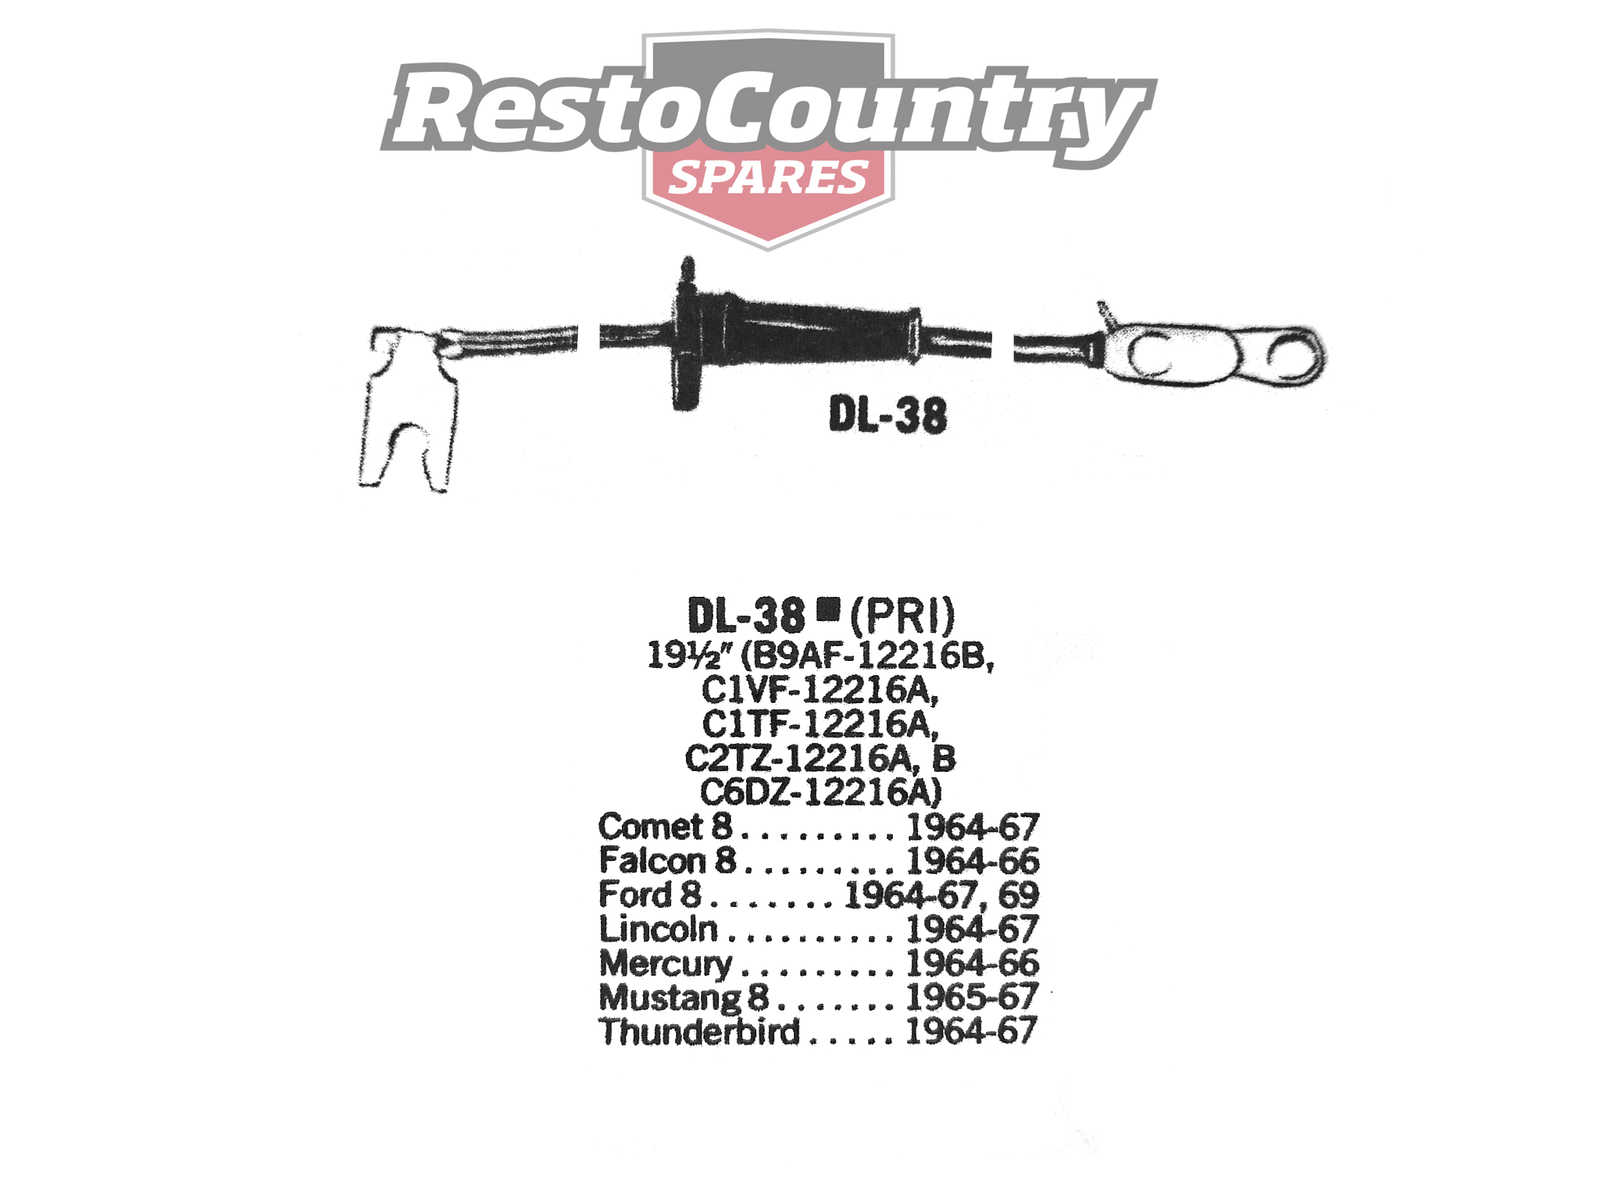 1942 Ford Distributor Wiring Trusted Diagrams For 66 Bronco Primary Lead Ignition Wire Dl 38 V8 Mercury 1979 Alternator Diagram